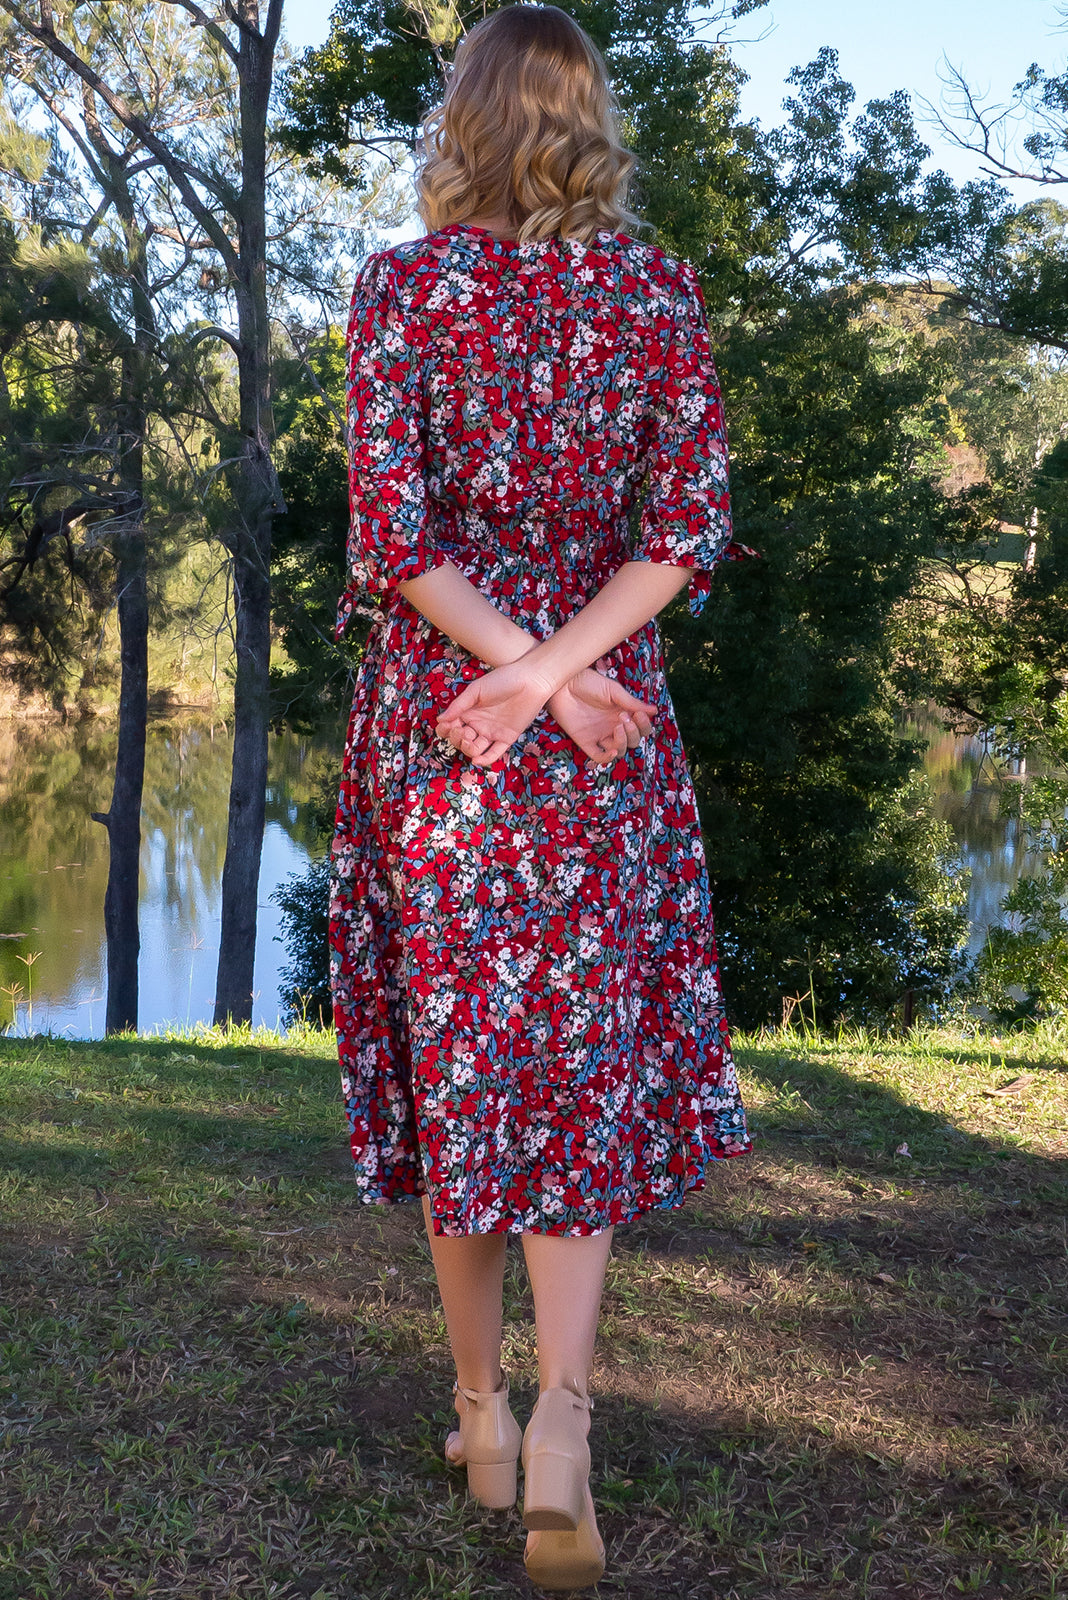 Henrietta Red Yves Dress features 3/4 tie sleeves, fitted basque waist with gathered bust, waist back elasticated, side pockets and woven 100% rayon in black base with a confetti floral print in red, pink, blue, green and white.